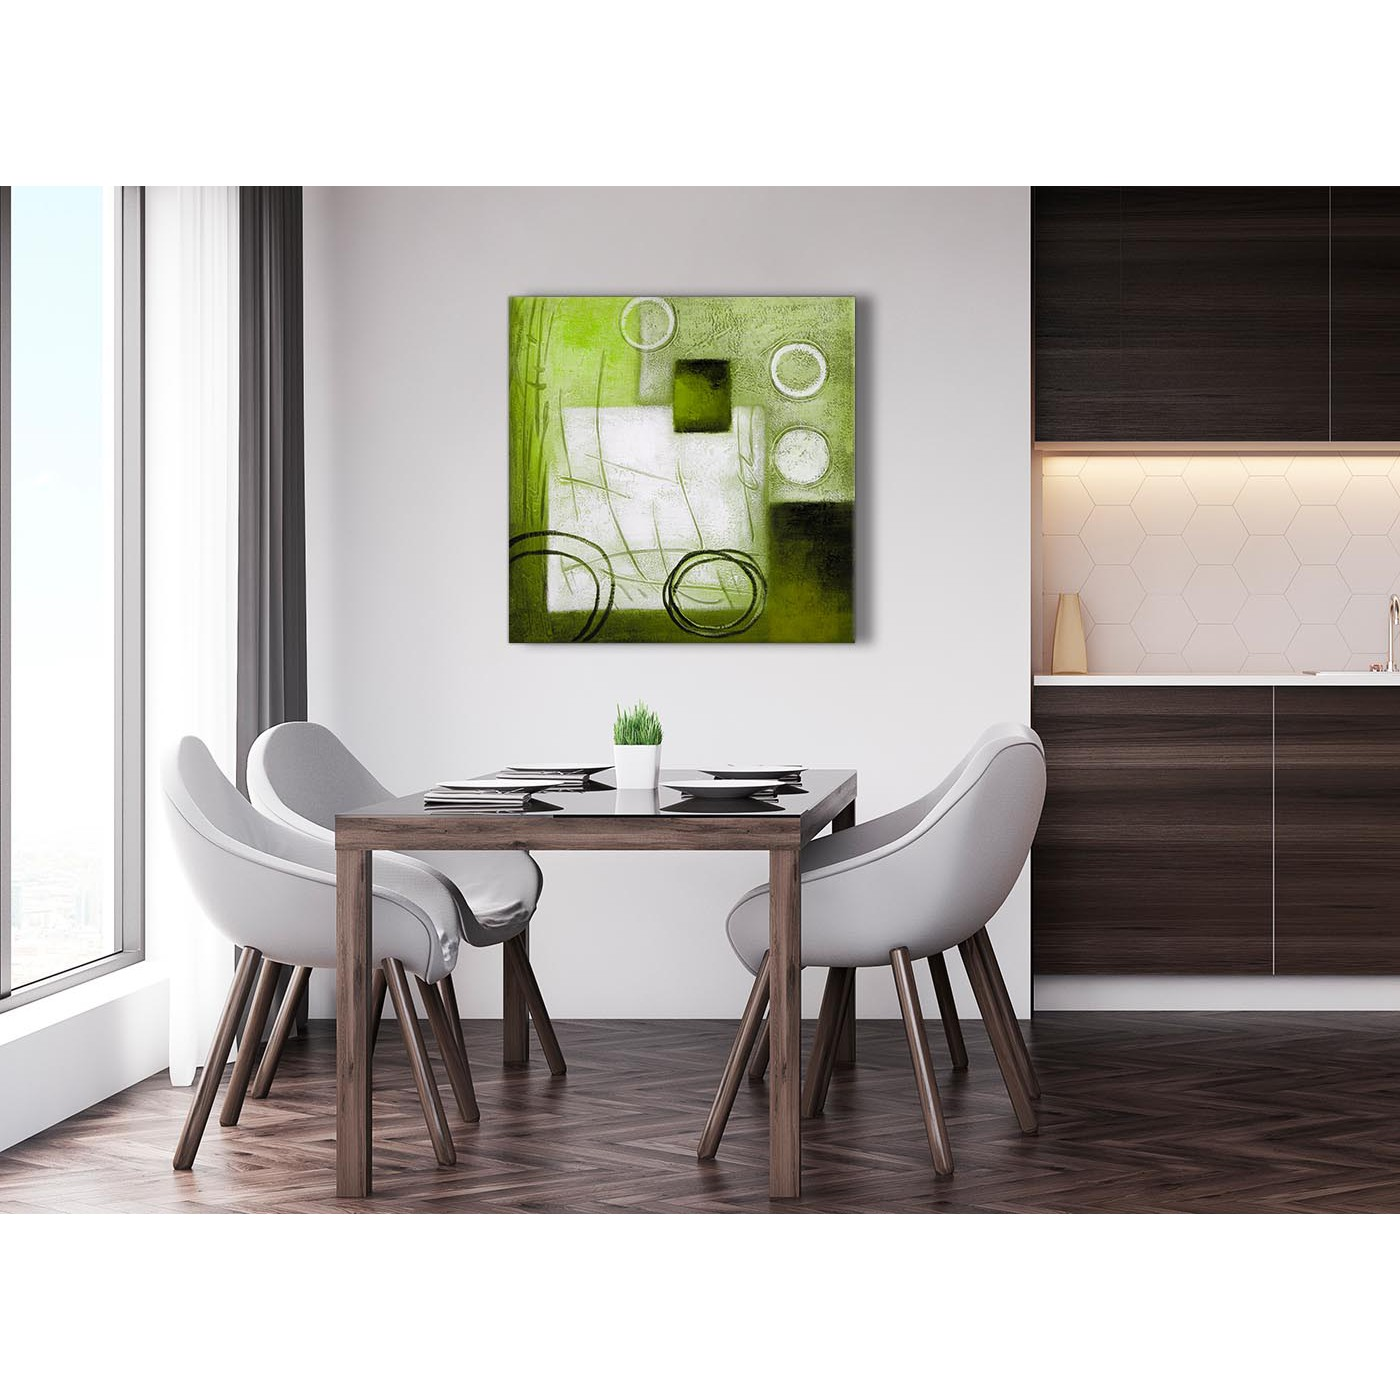 Display Gallery Item 4. Modern Lime Green Painting Abstract Living Room  Canvas Wall Art Decor 1s431l   79cm Square Print